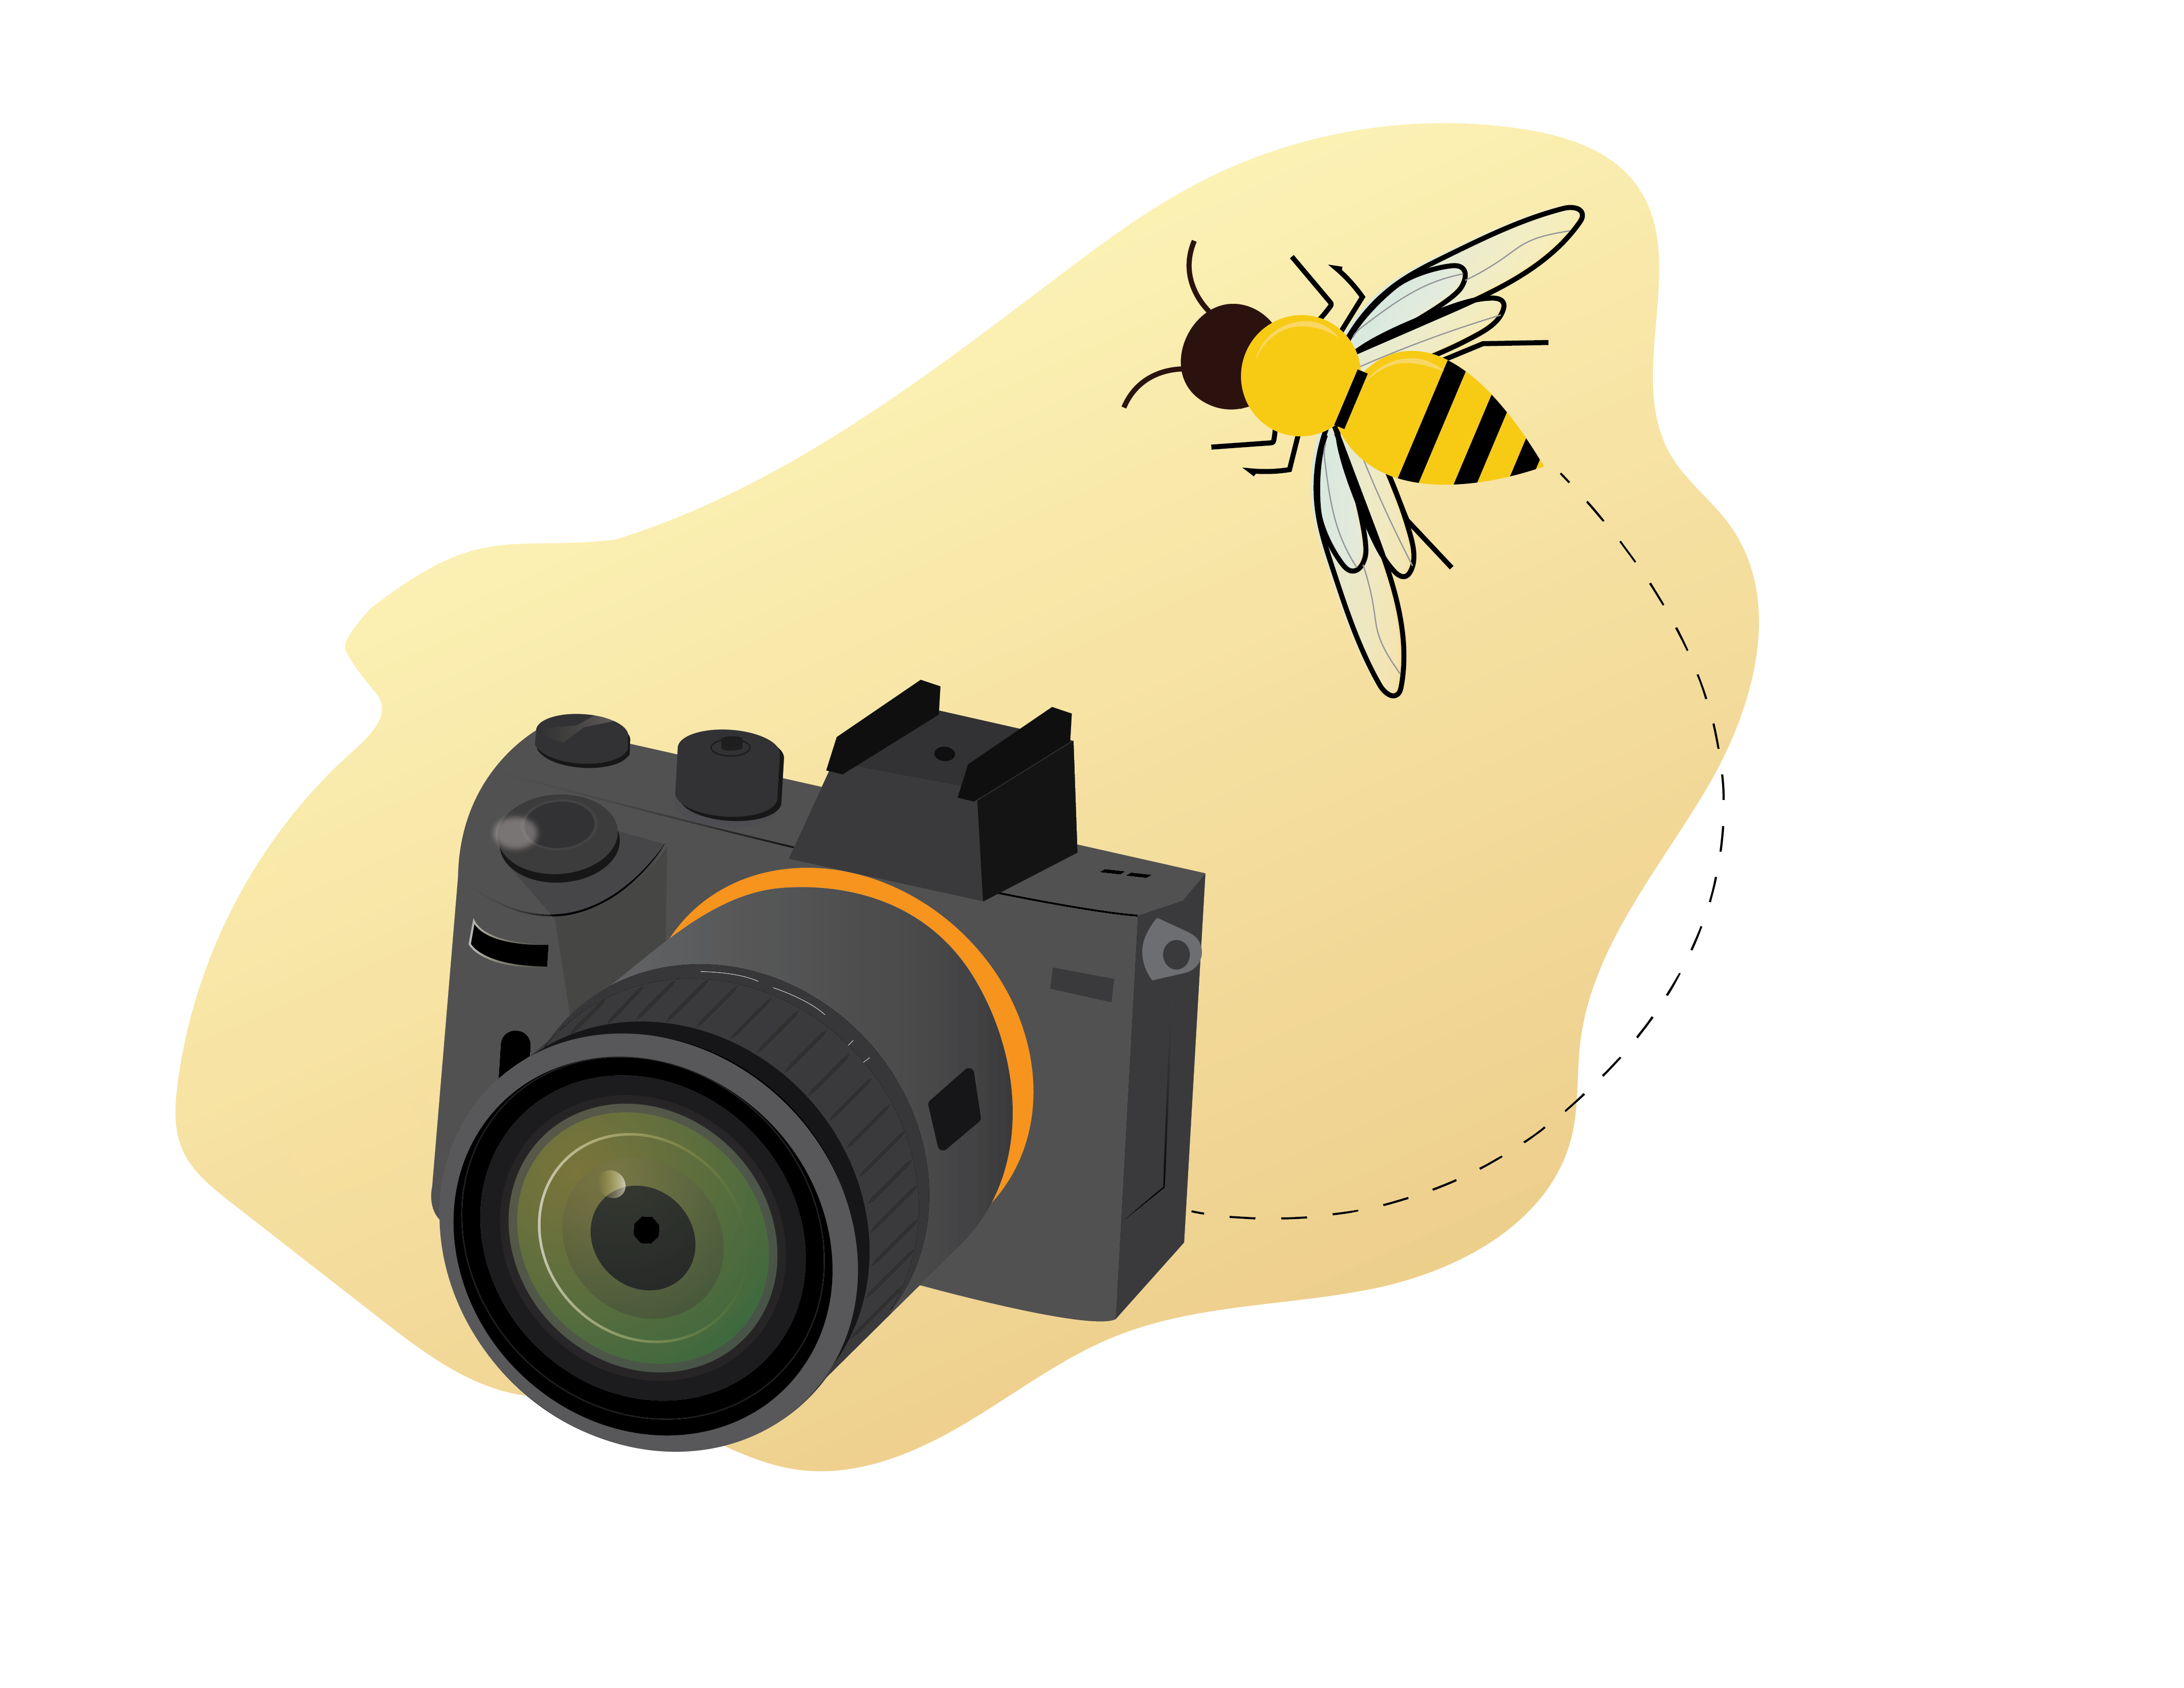 Bee Flying around Camera for photography services